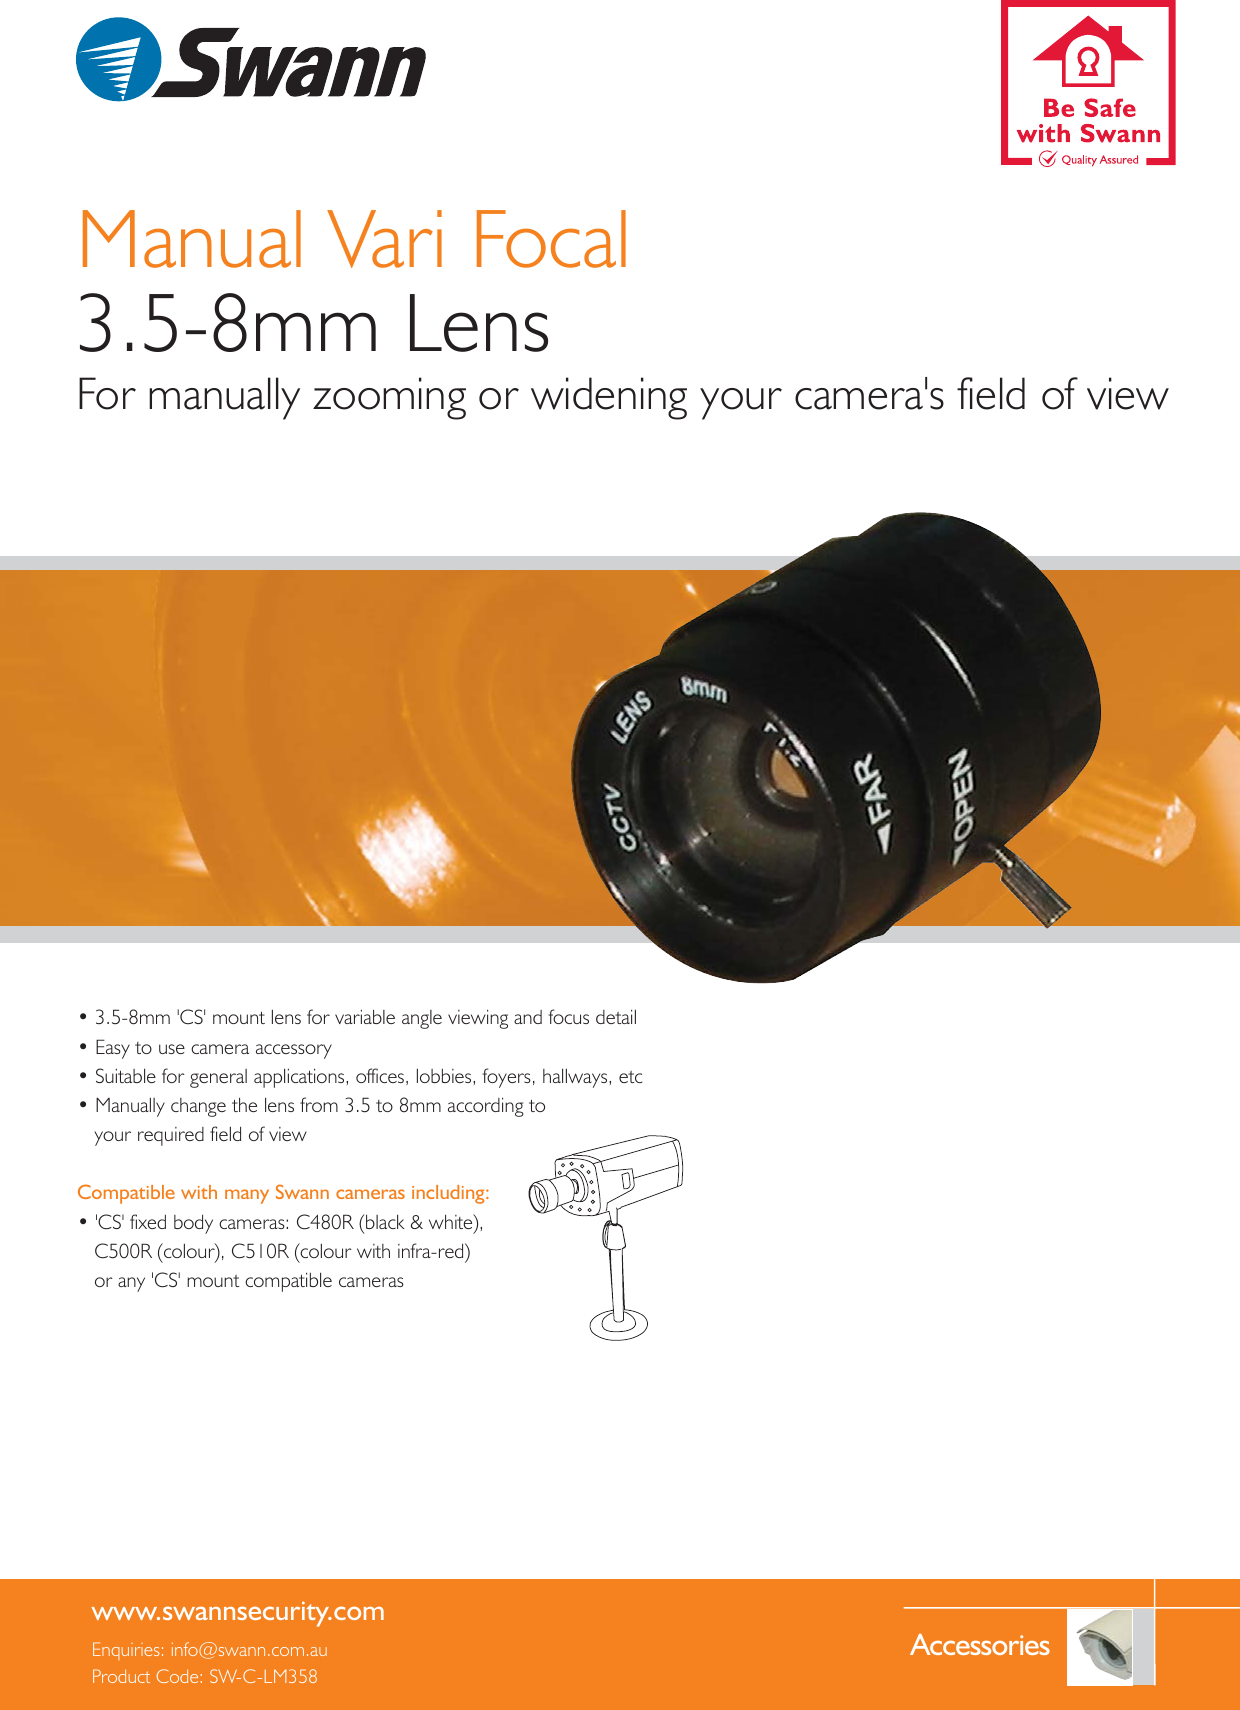 Swann Sw C Lm358 Users Manual Vari Focal 3 5 8mm Lens LM358_v3 qxp